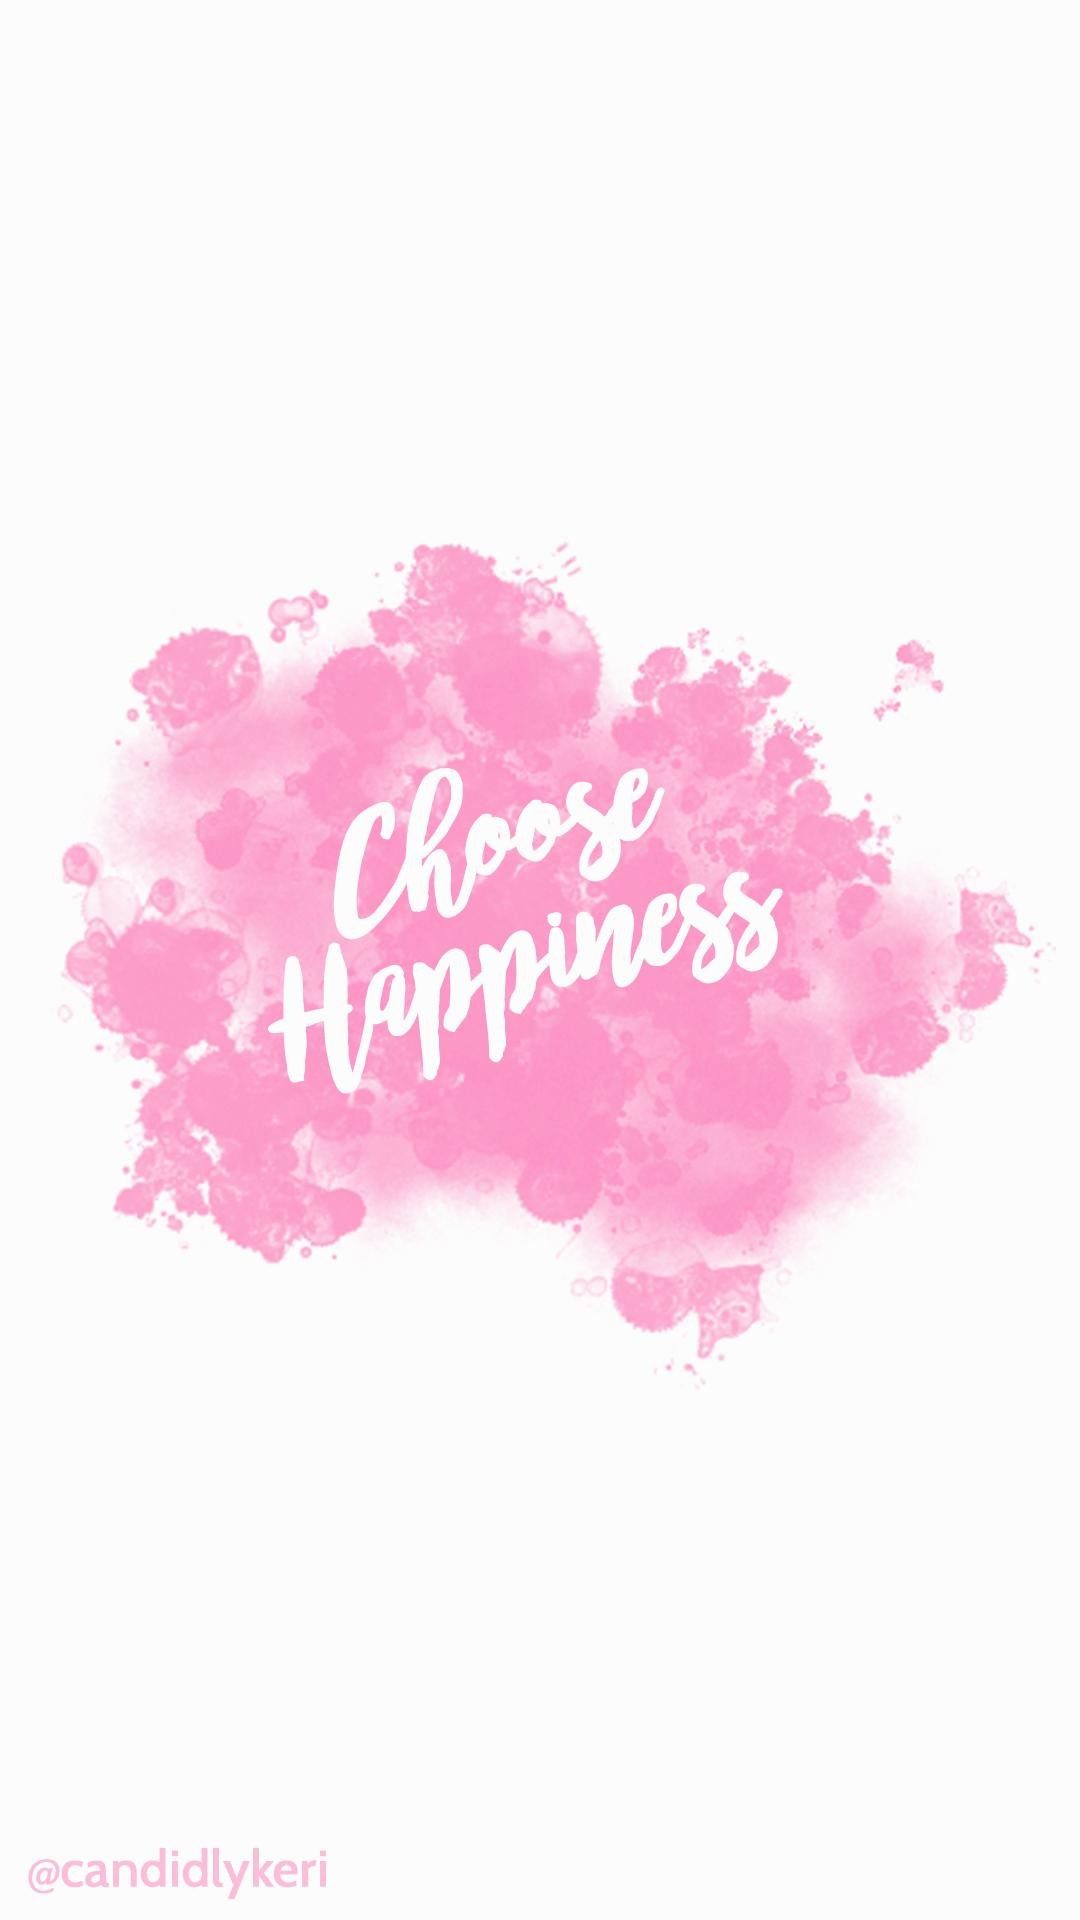 Choose-Happiness-quote-pink-splatter-paint-watercolor-with-. Cute-Flower- wallpaper-wp2003778